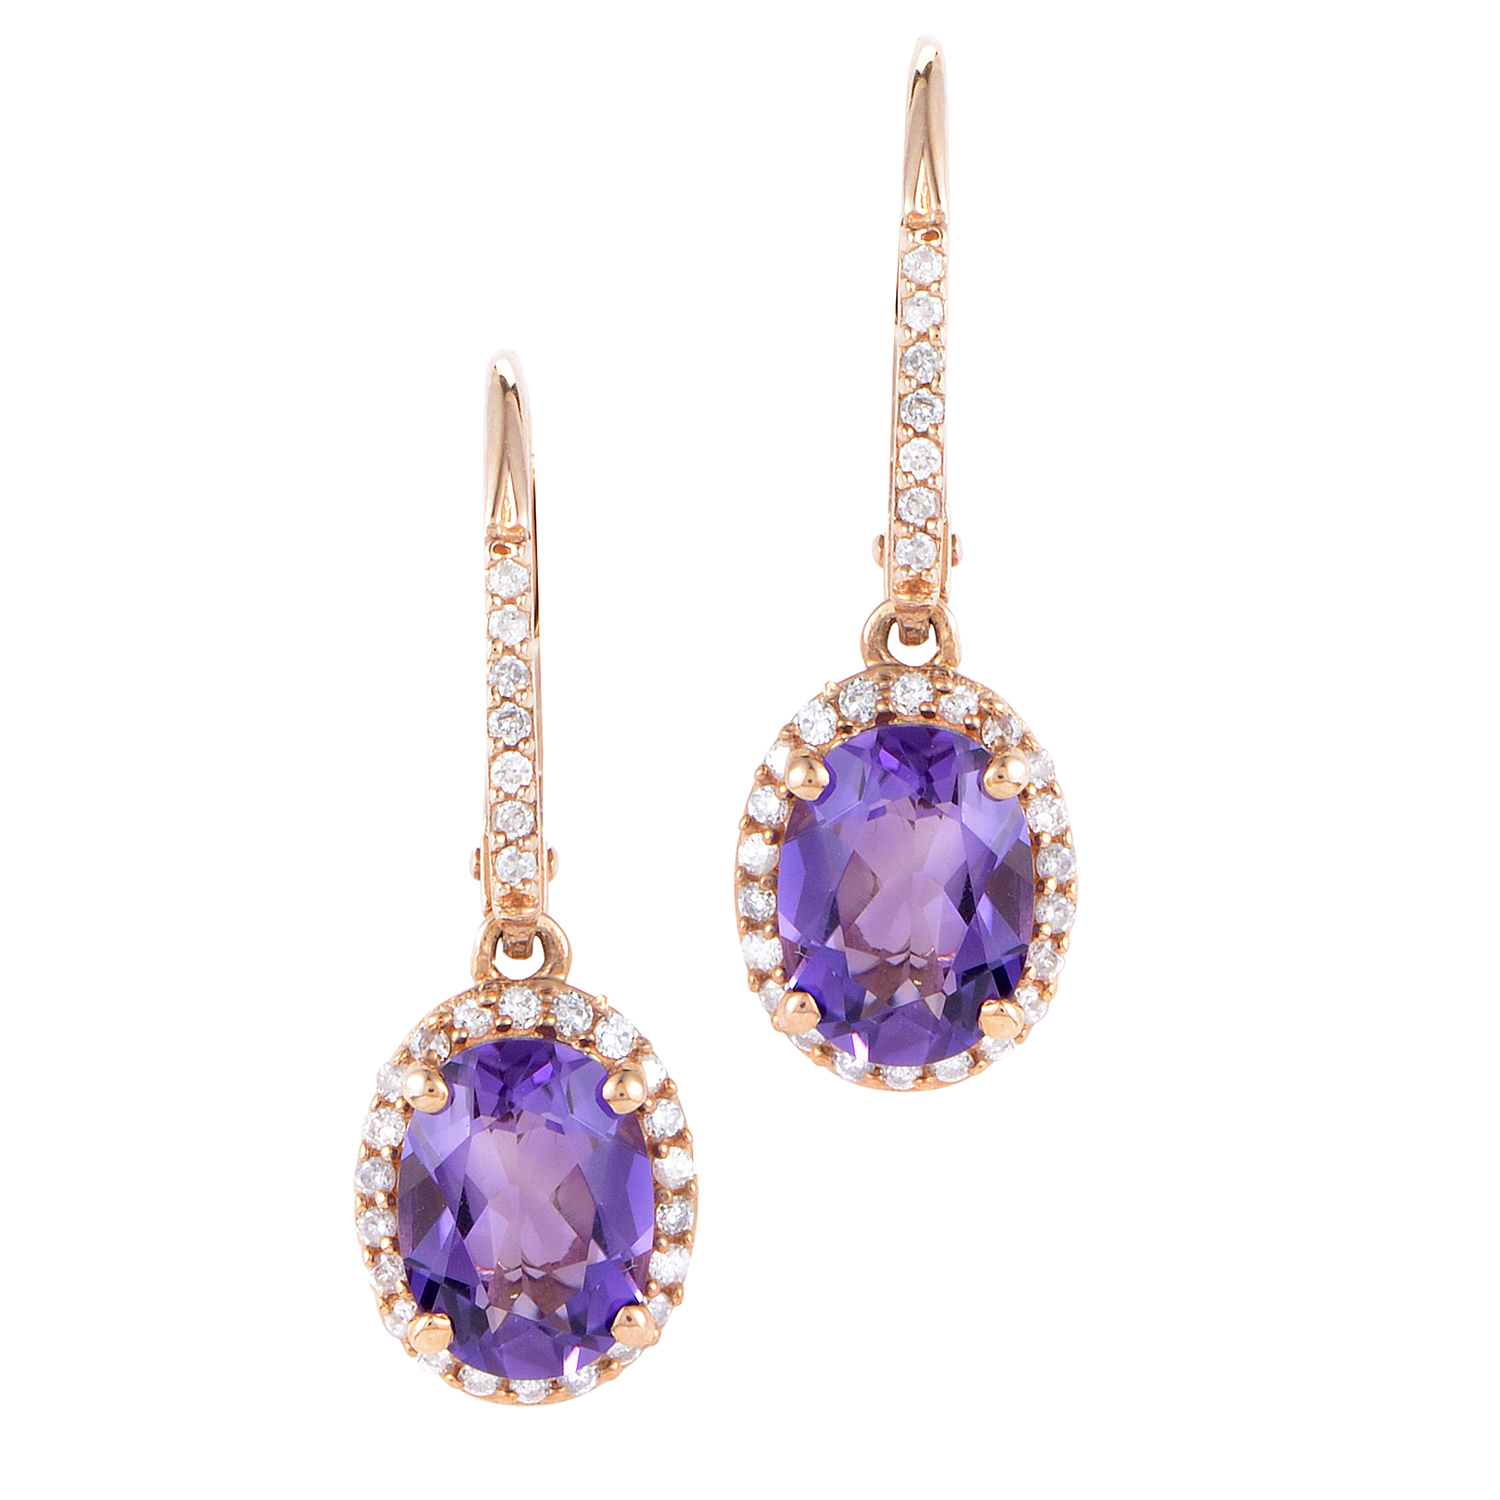 Womens 14K Rose Gold Diamond and Amethyst Dangle Earrings